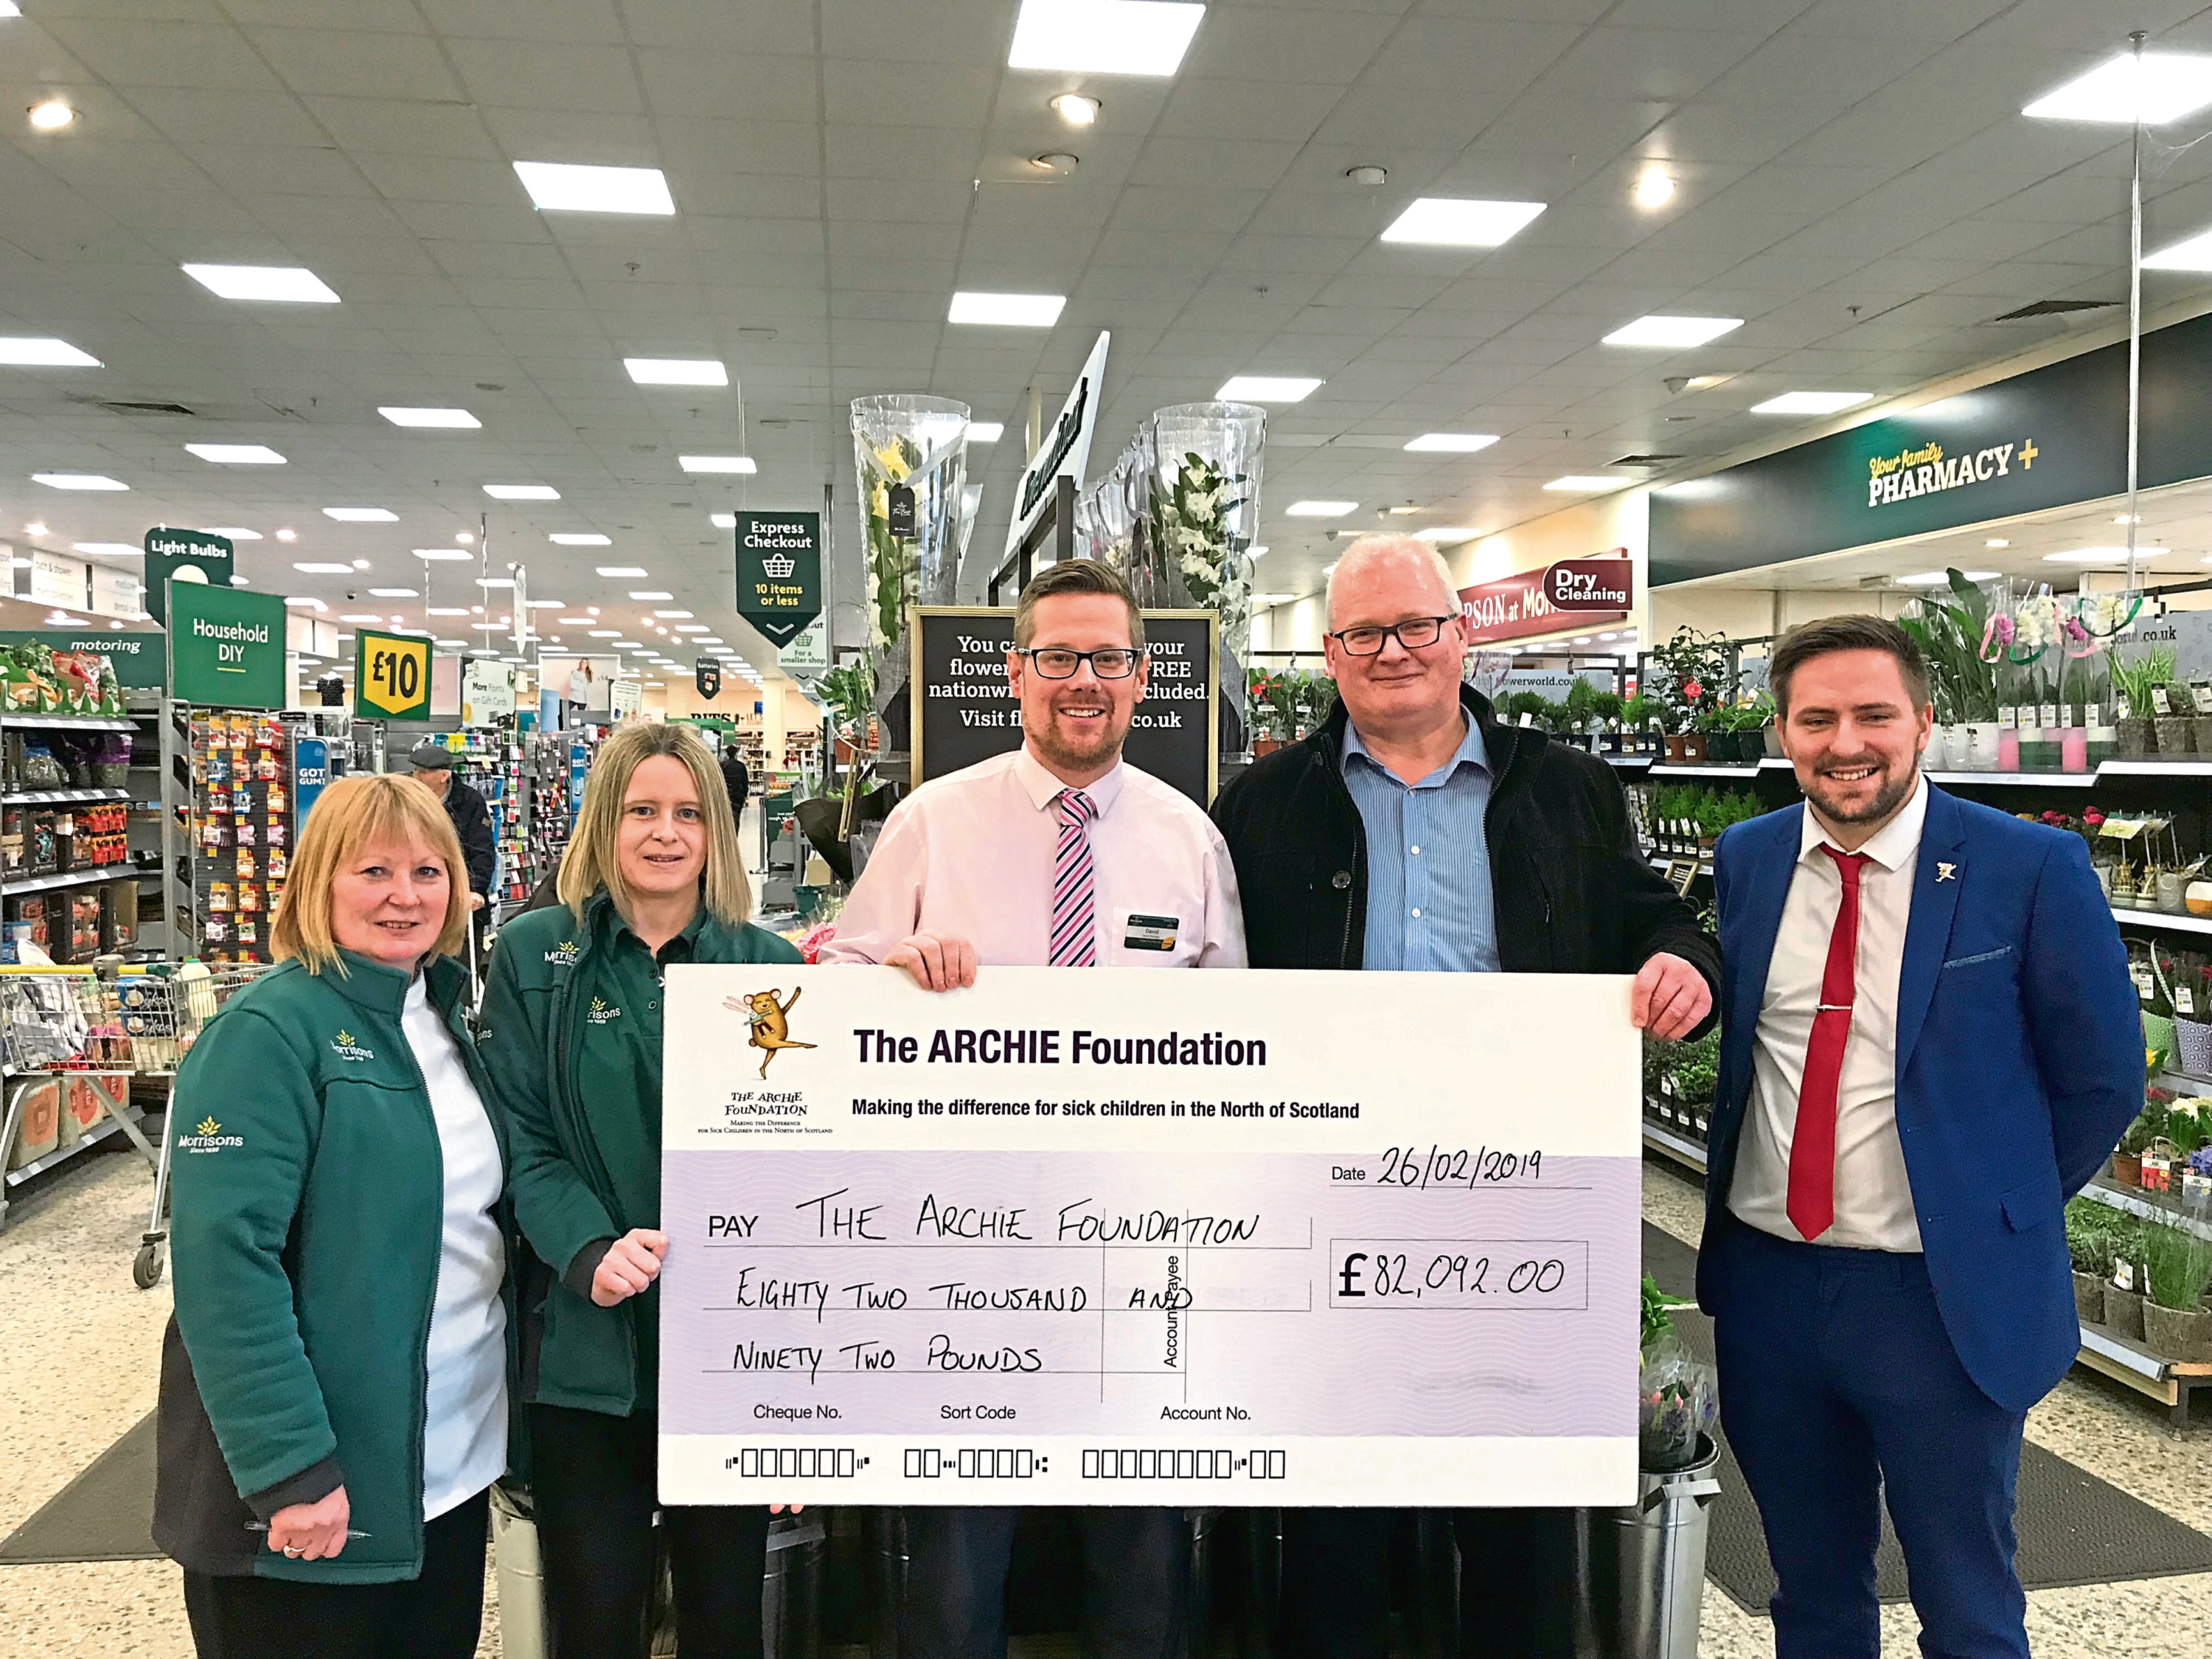 Morrisons donated £82,092 to the Archie Foundation,  which supports sick children at Royal Aberdeen Children's Hospital